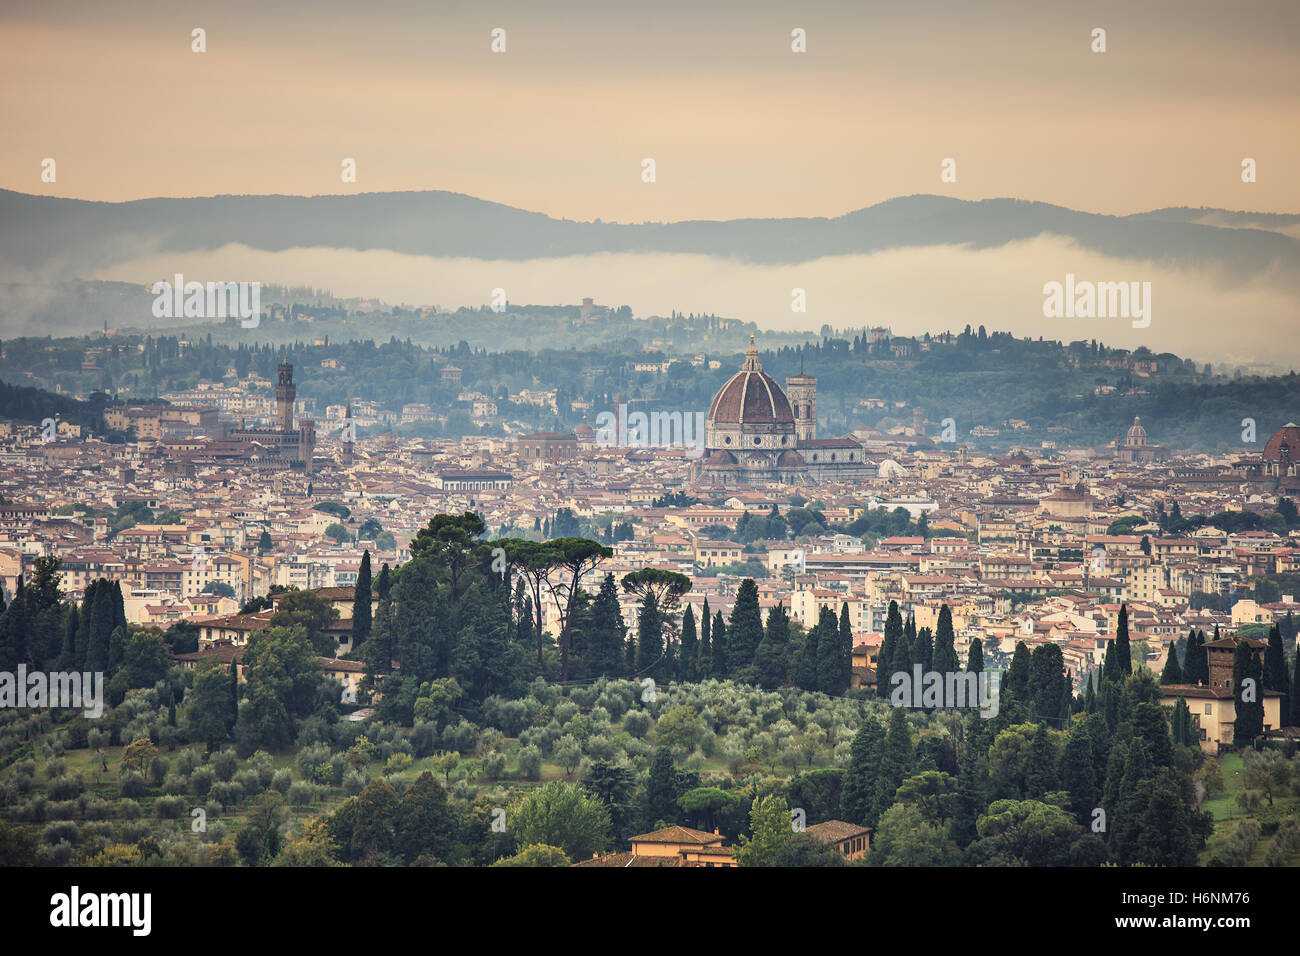 Florence or Firenze aerial foggy morning cityscape. Panorama view from Fiesole hill. Palazzo Vecchio and Duomo Cathedral. - Stock Image